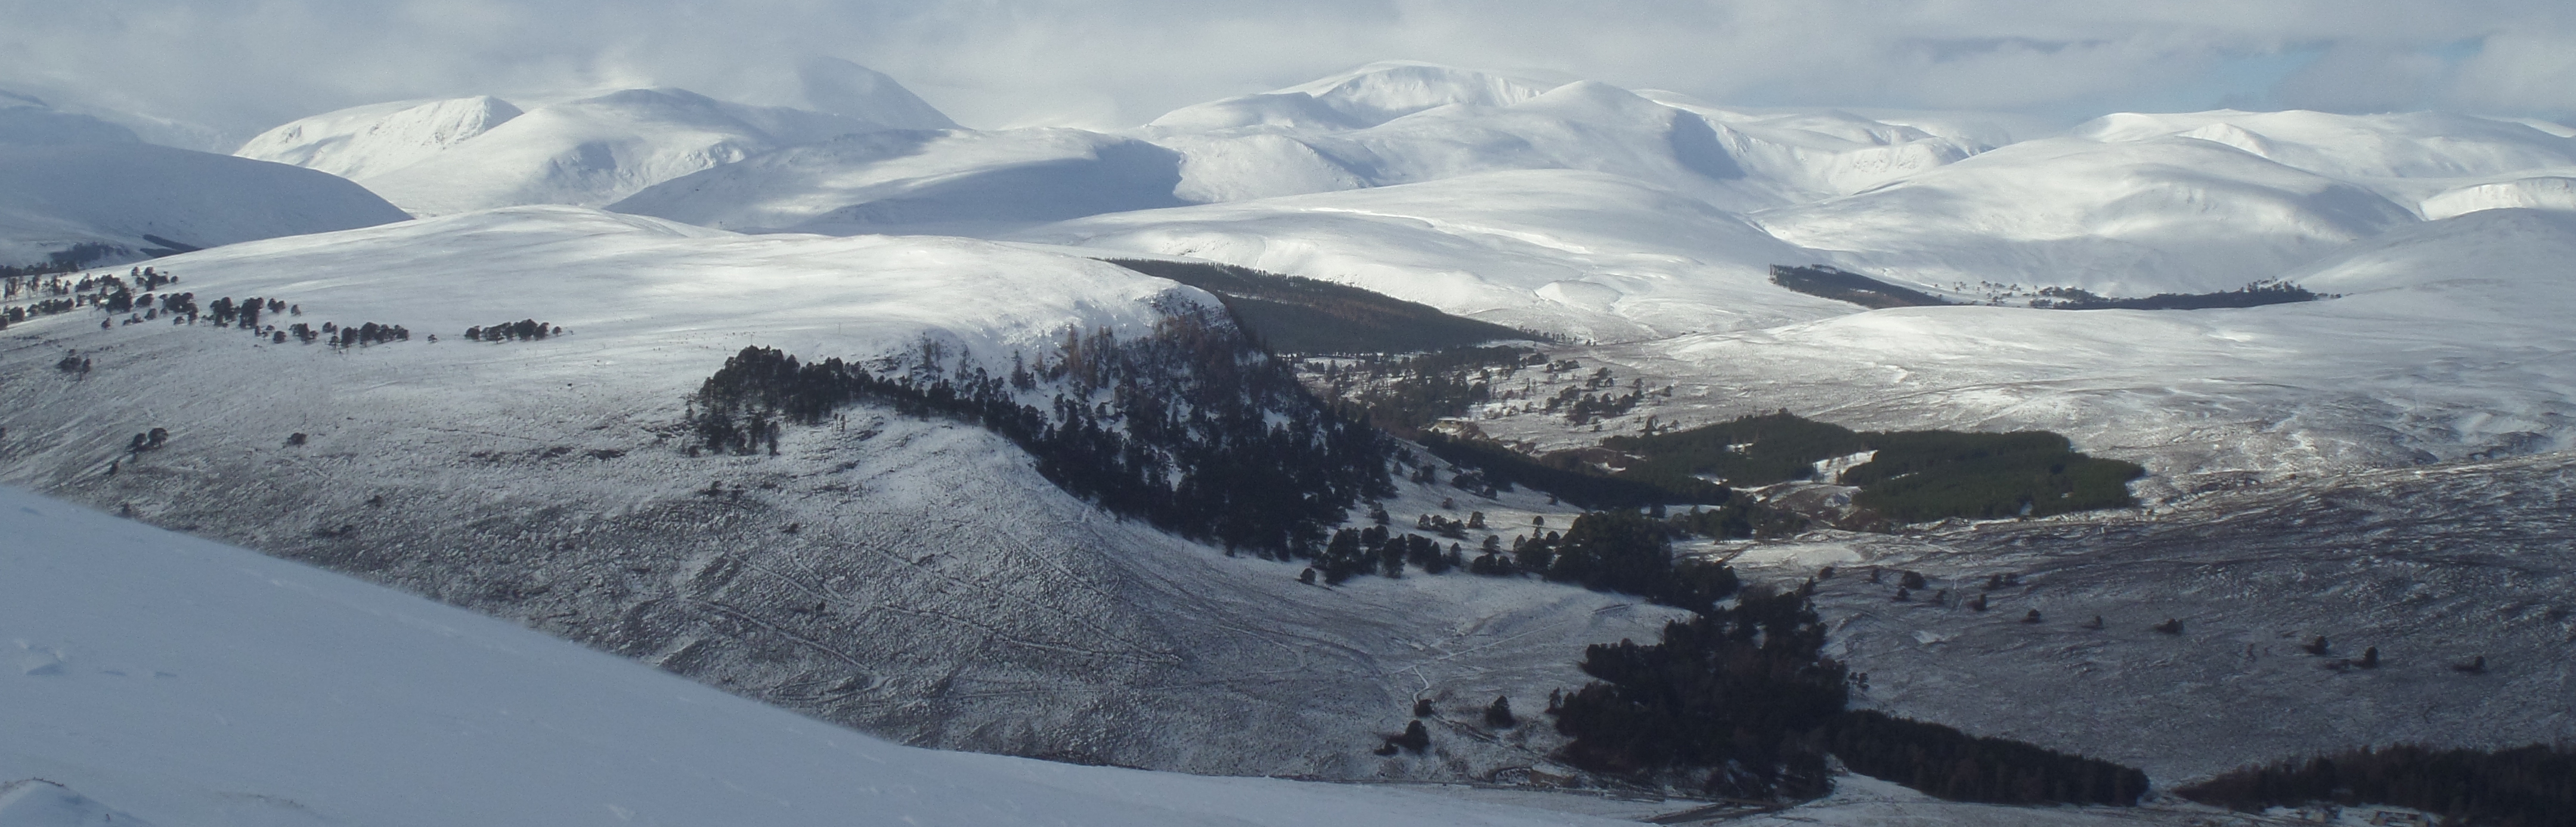 Cairngorms winter view from Morrone